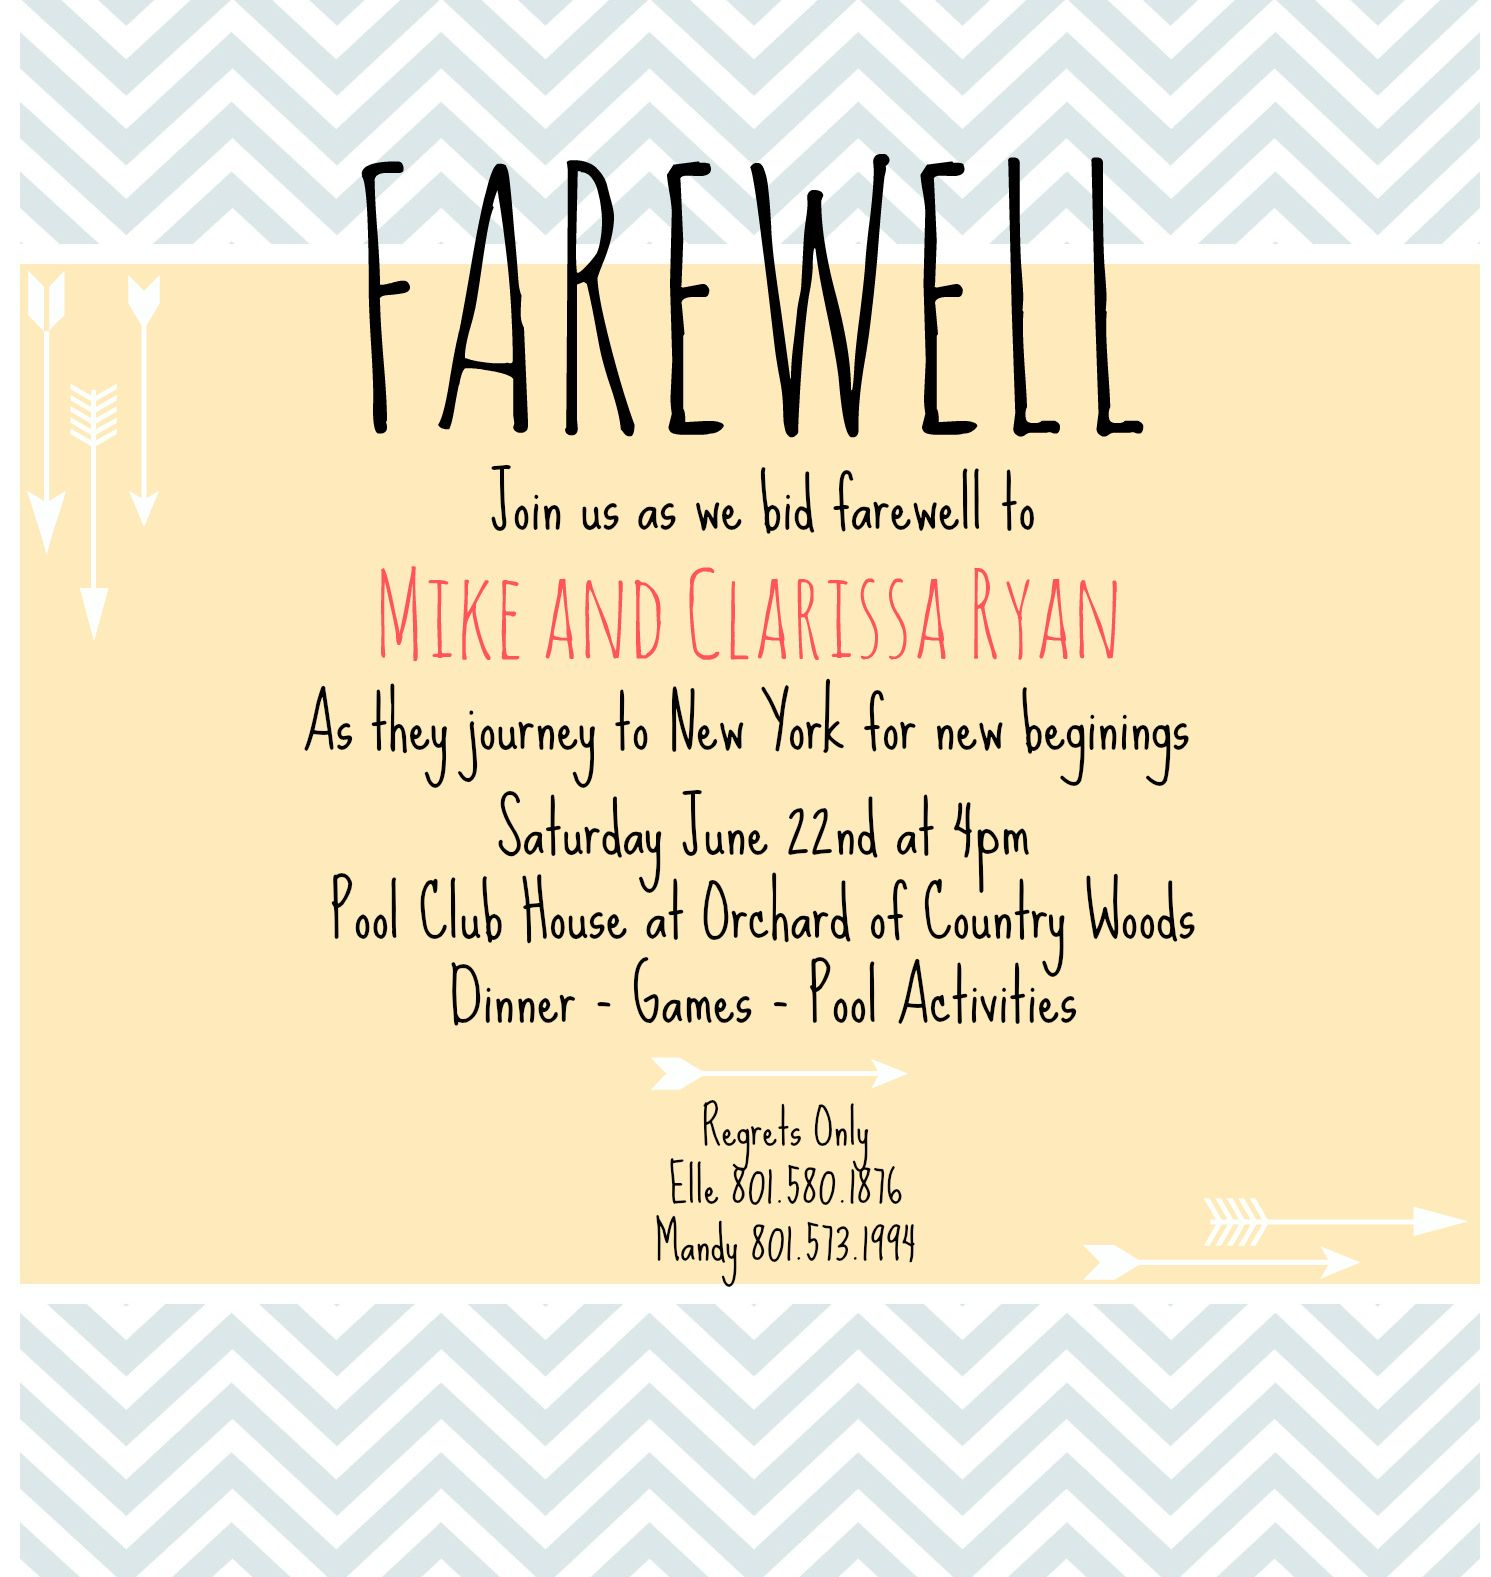 Farewell Invite  Picmonkey Creations    Farewell